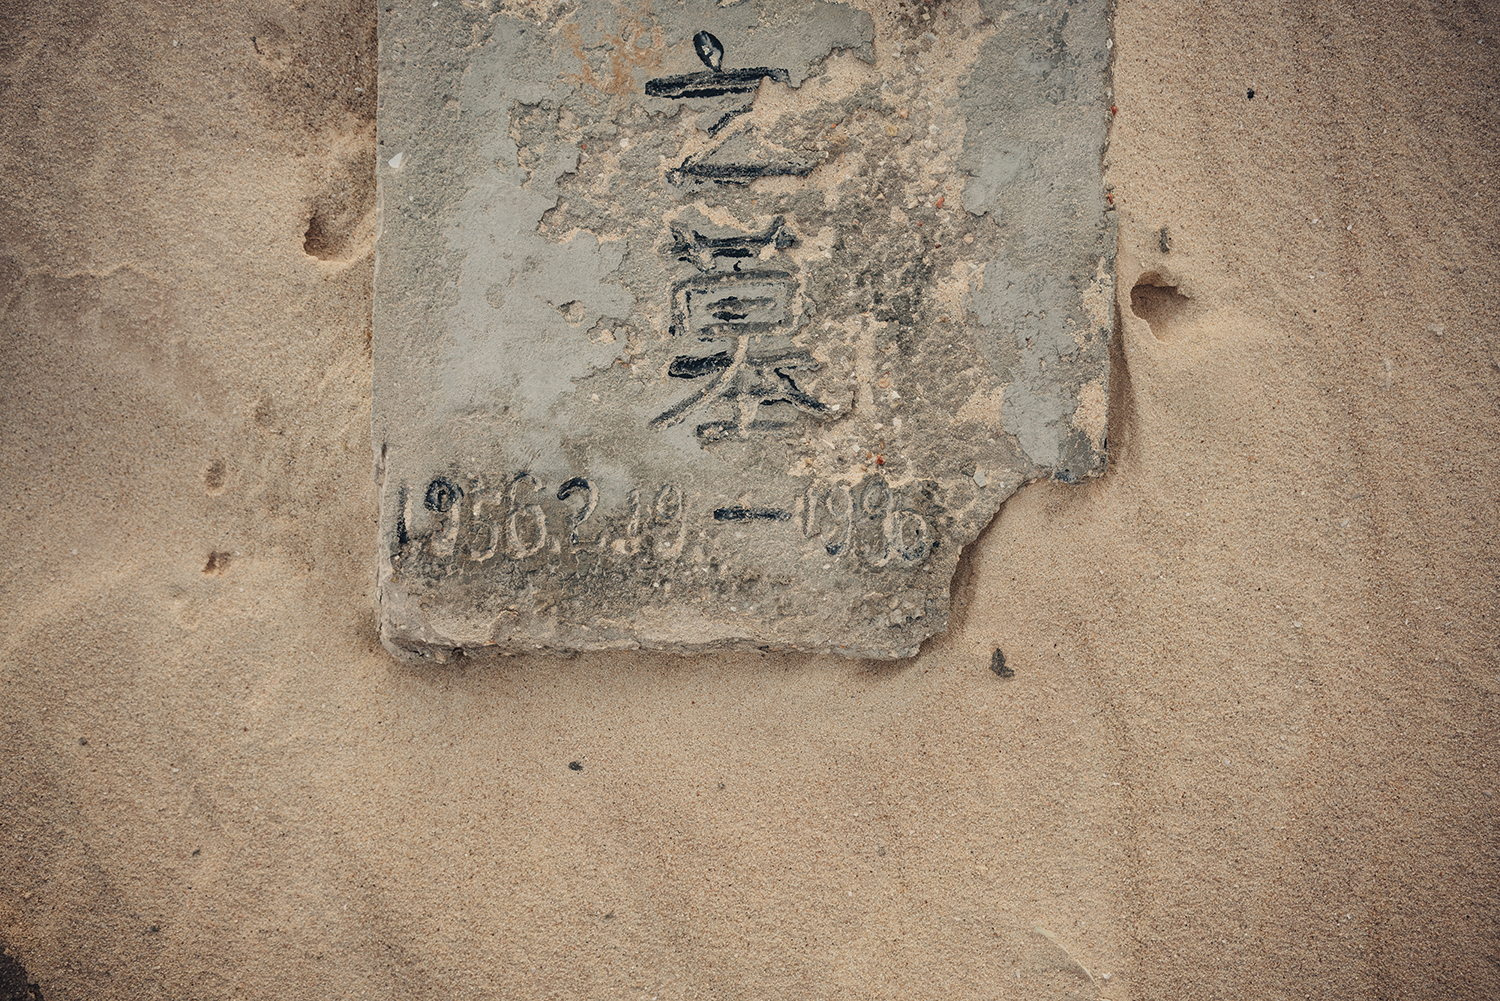 A gravestone in a Chinese cemetery near the ocean in suburban Nouadhibou, July 4, 2016. Most of those buried here were involved in the distant-water fishing industry. Their graves are largely left unattended, except during the Chinese Tomb Sweeping Festival, according to the Chinese people who live here.